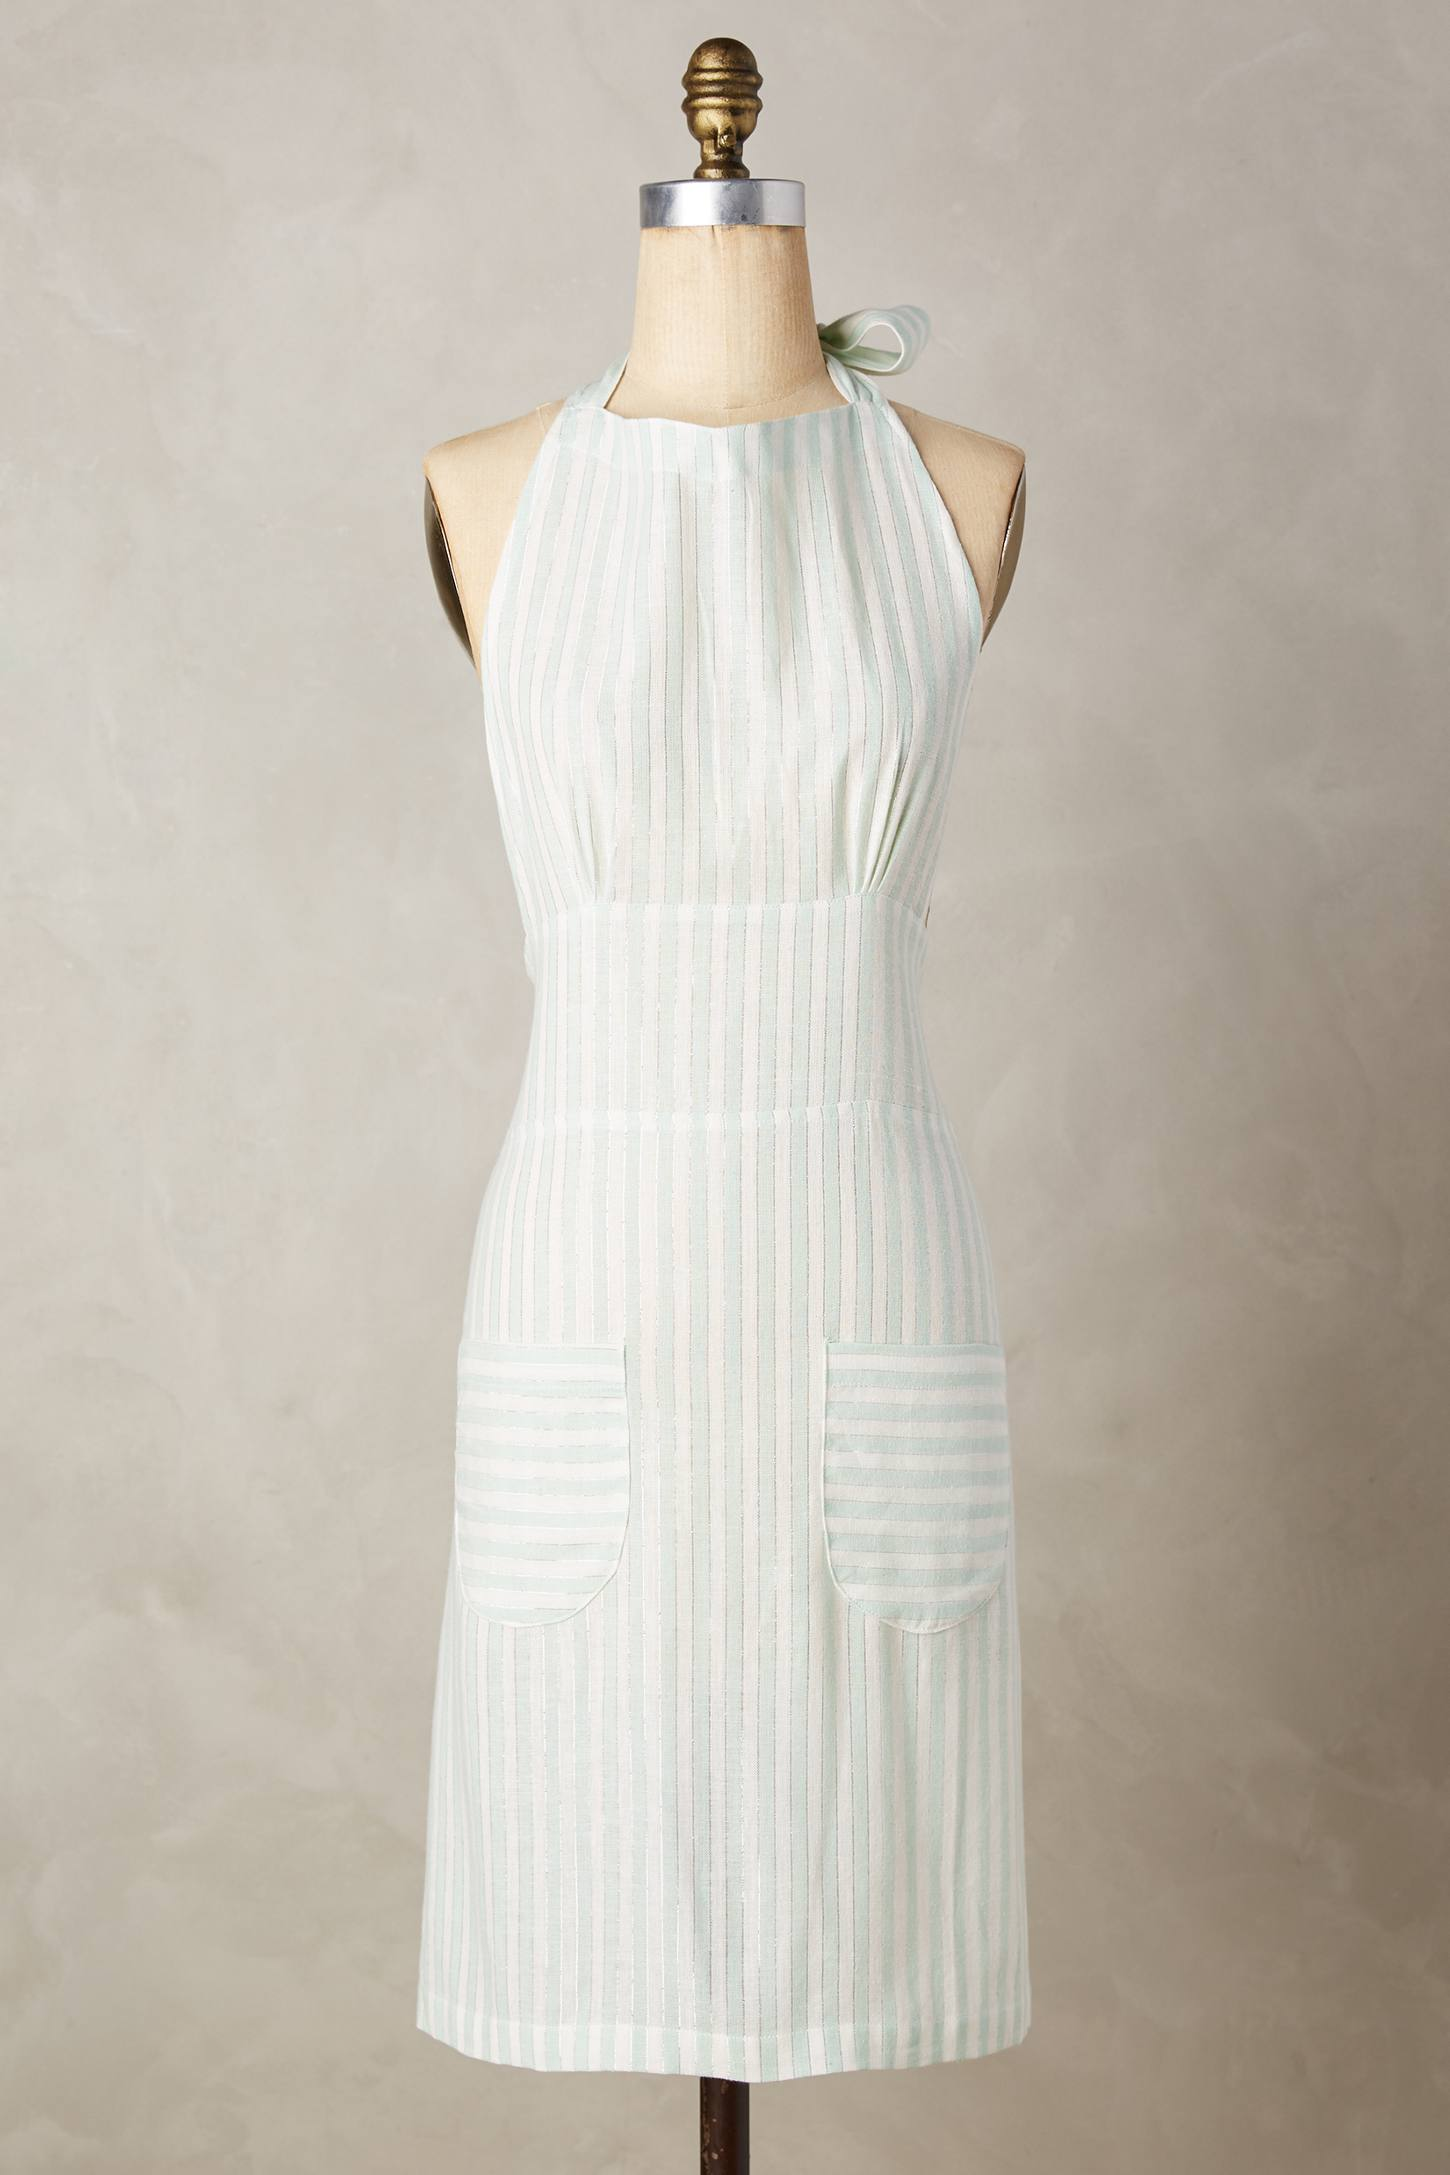 Shimmer Stripe Apron from Anthropologie